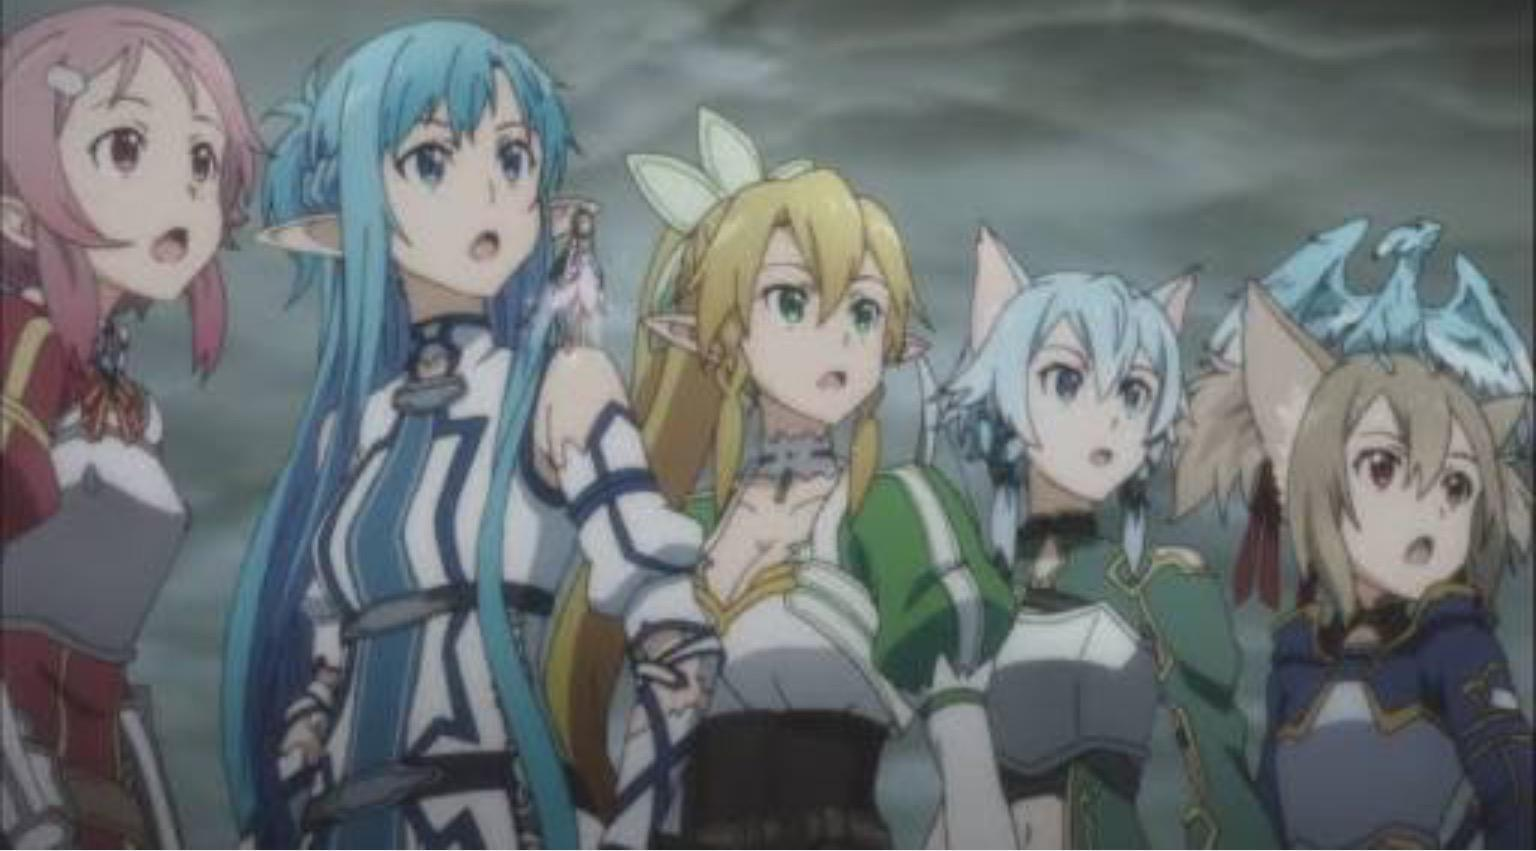 What sao girl would date you personality quiz